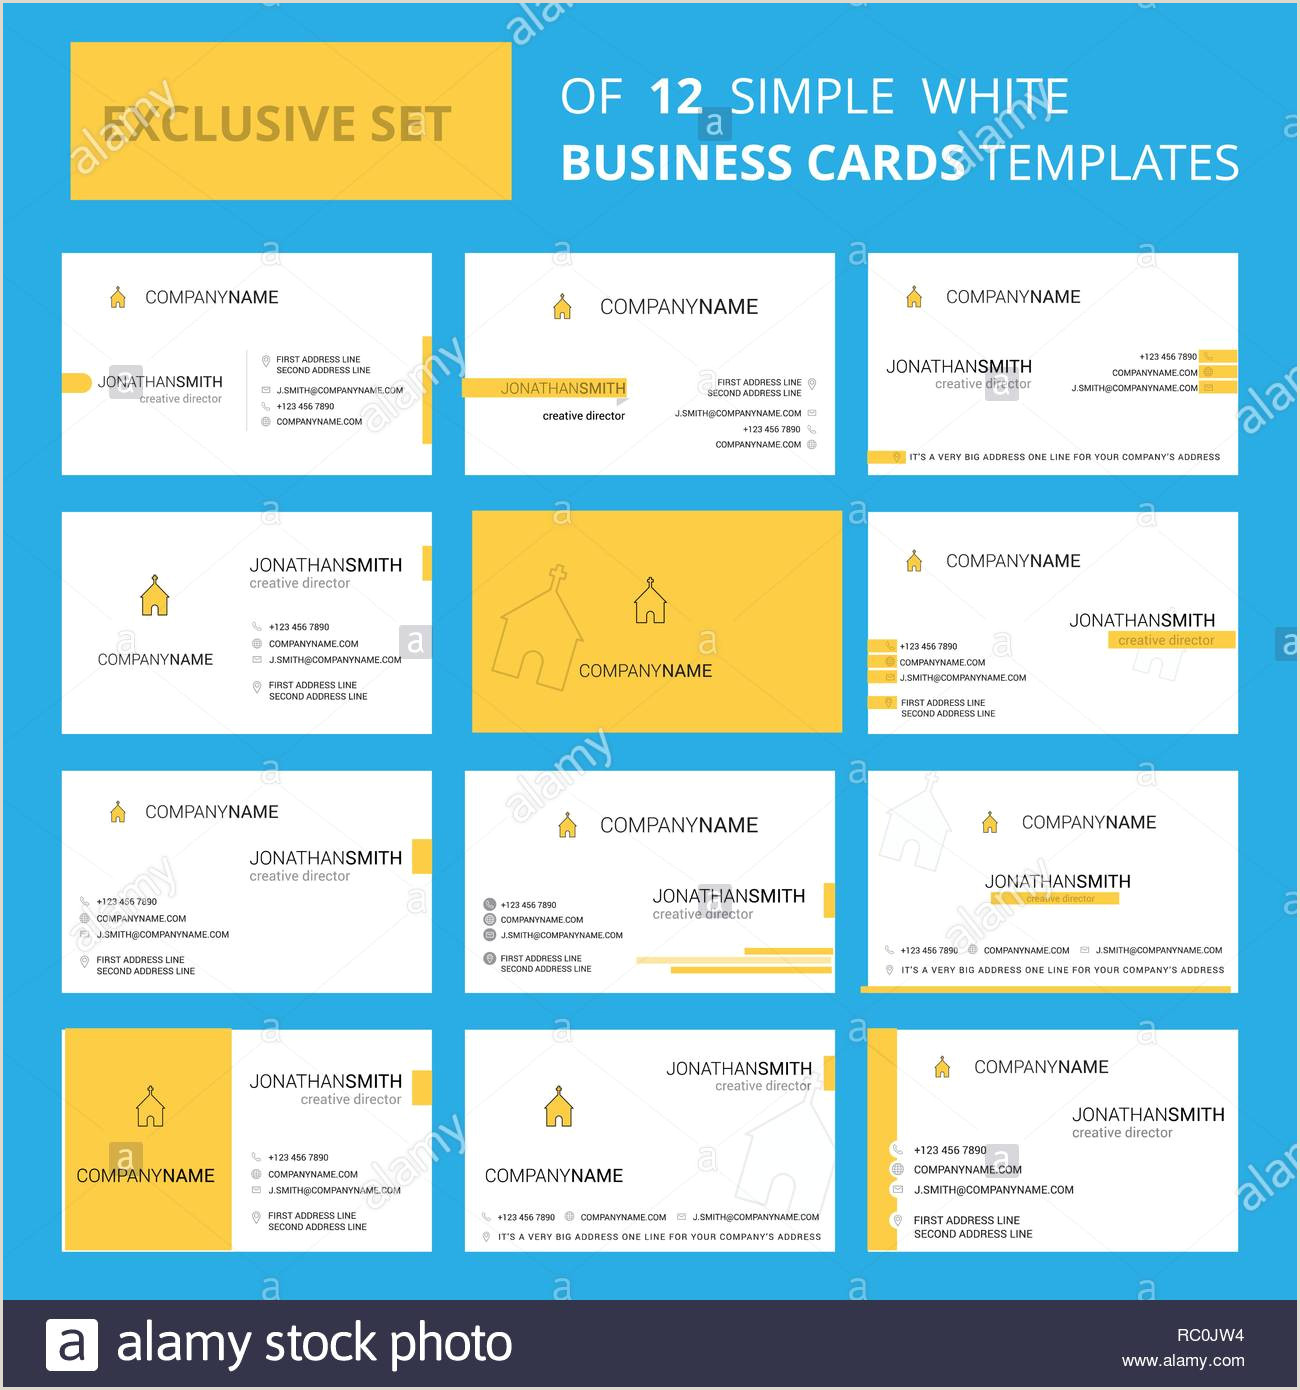 Unique Church Business Cards Set Of 12 Church Creative Busienss Card Template Editable